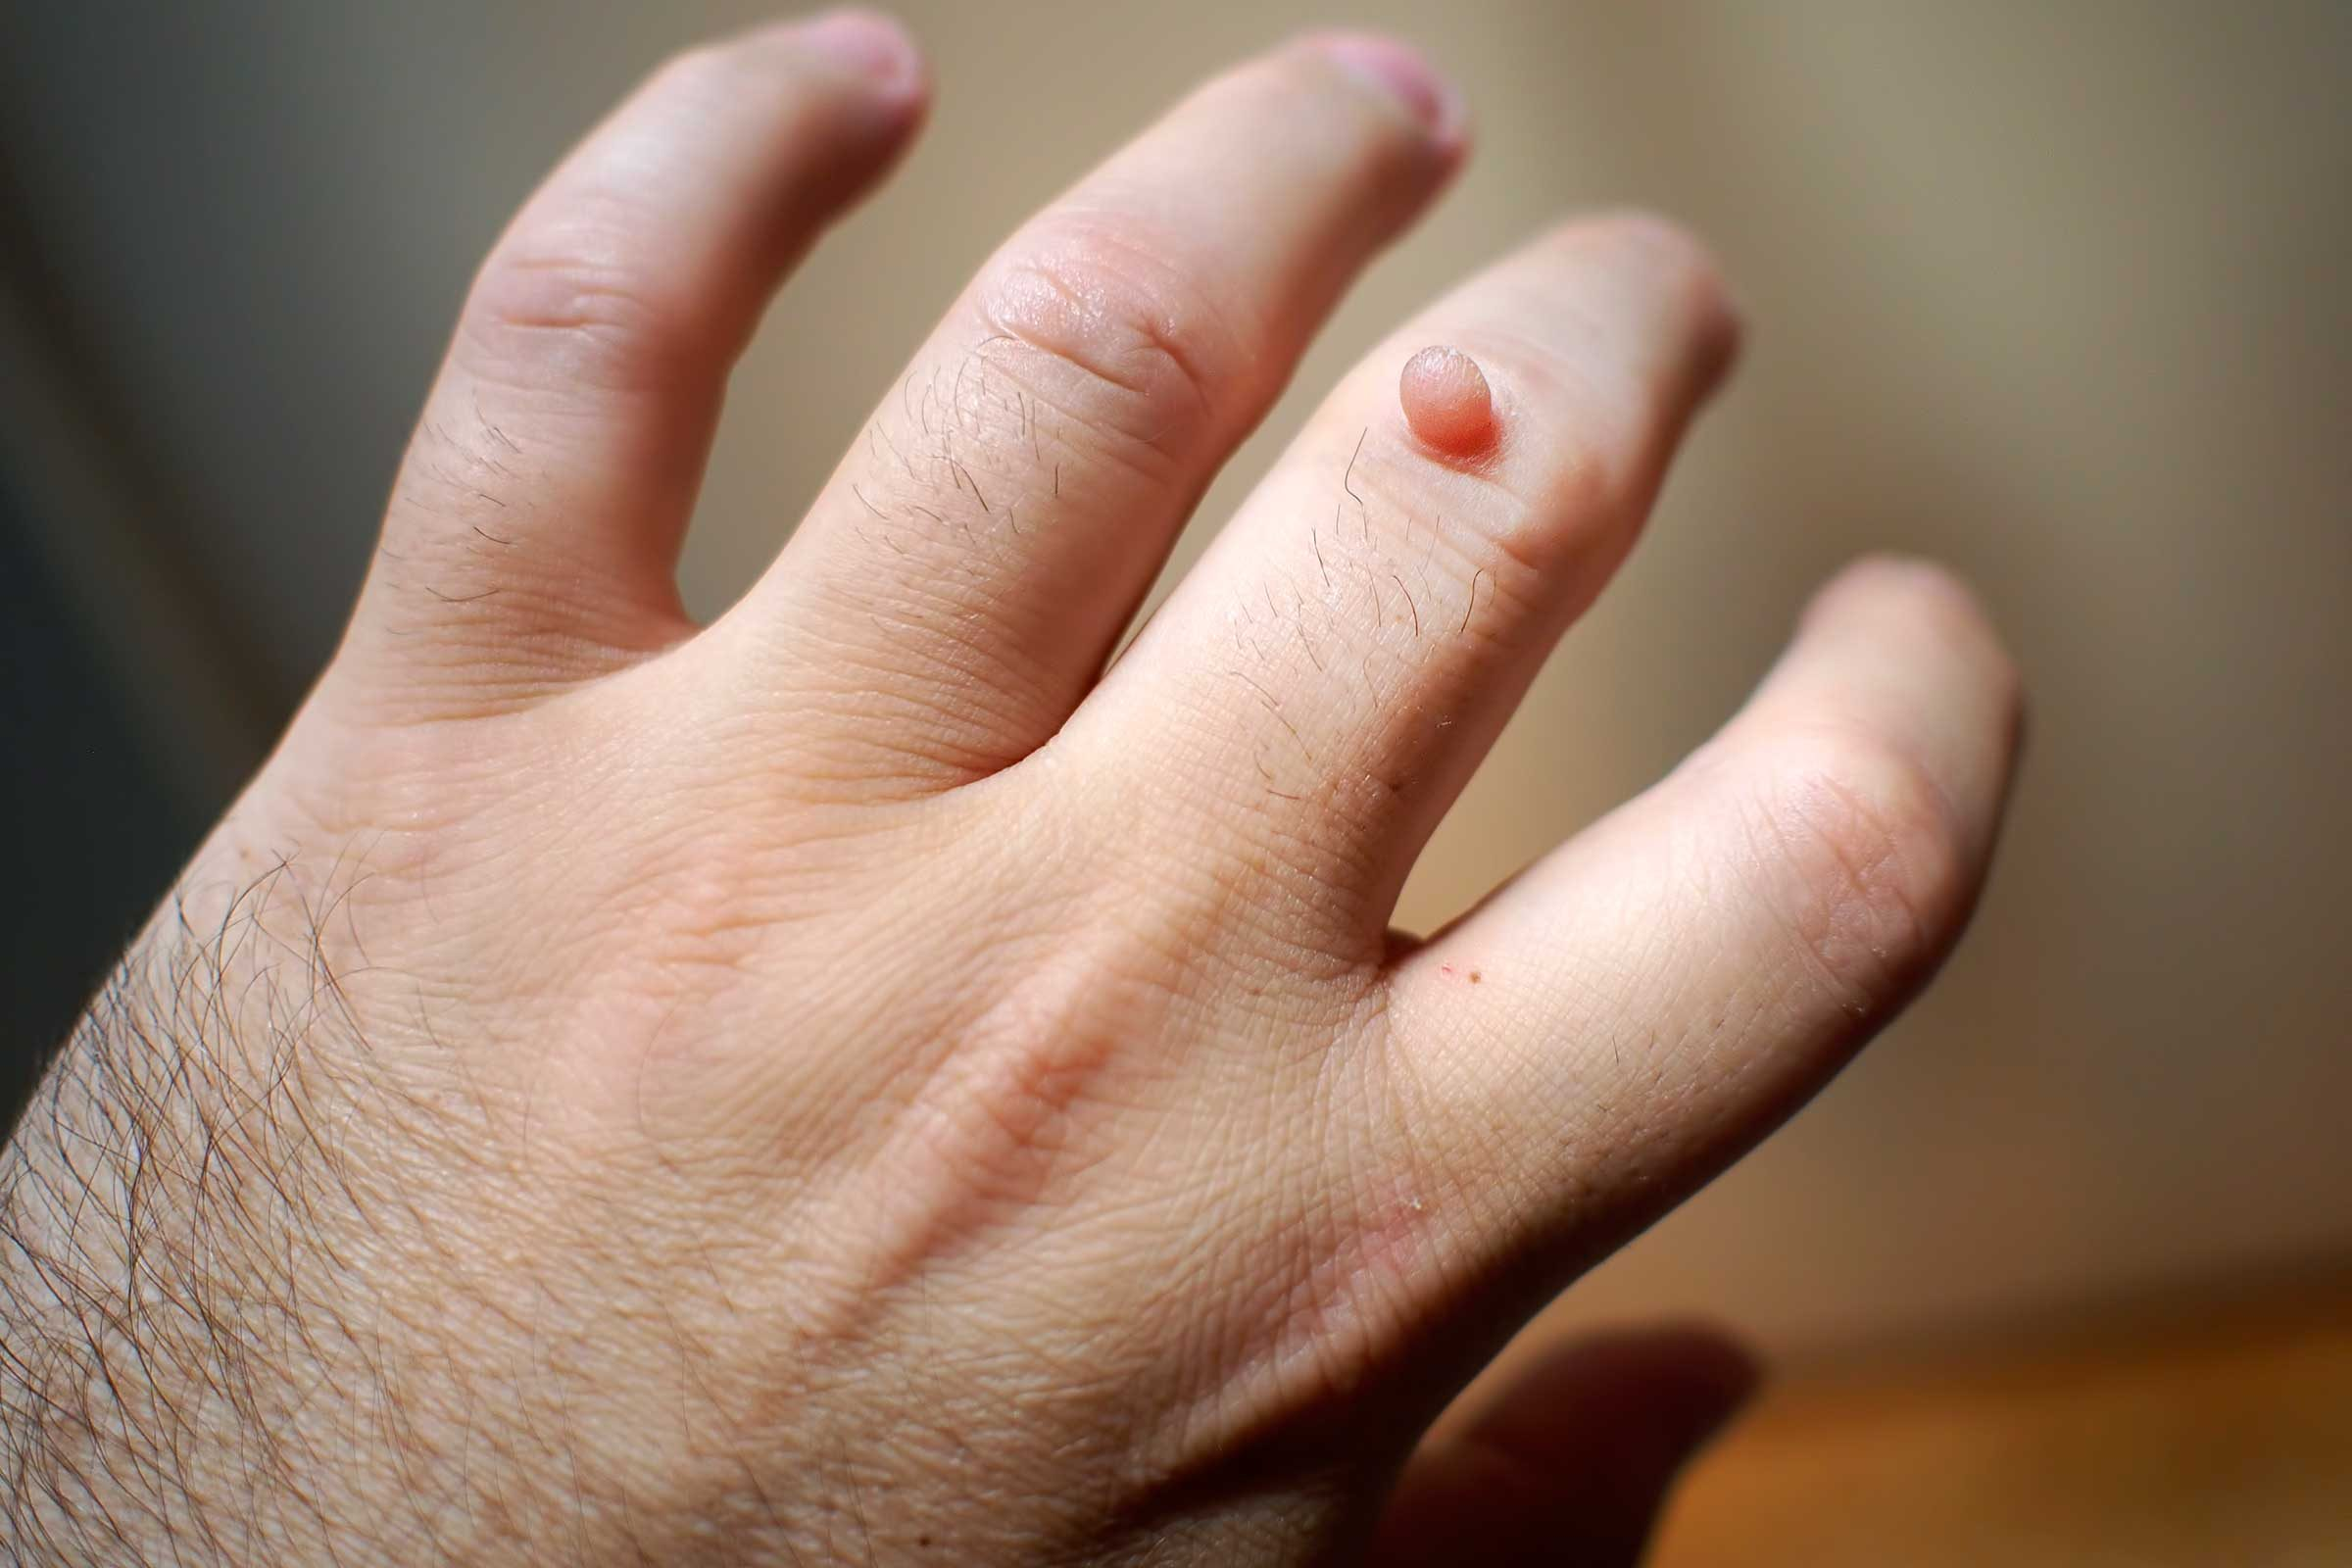 wart treatment with vinegar hpv without warts contagious